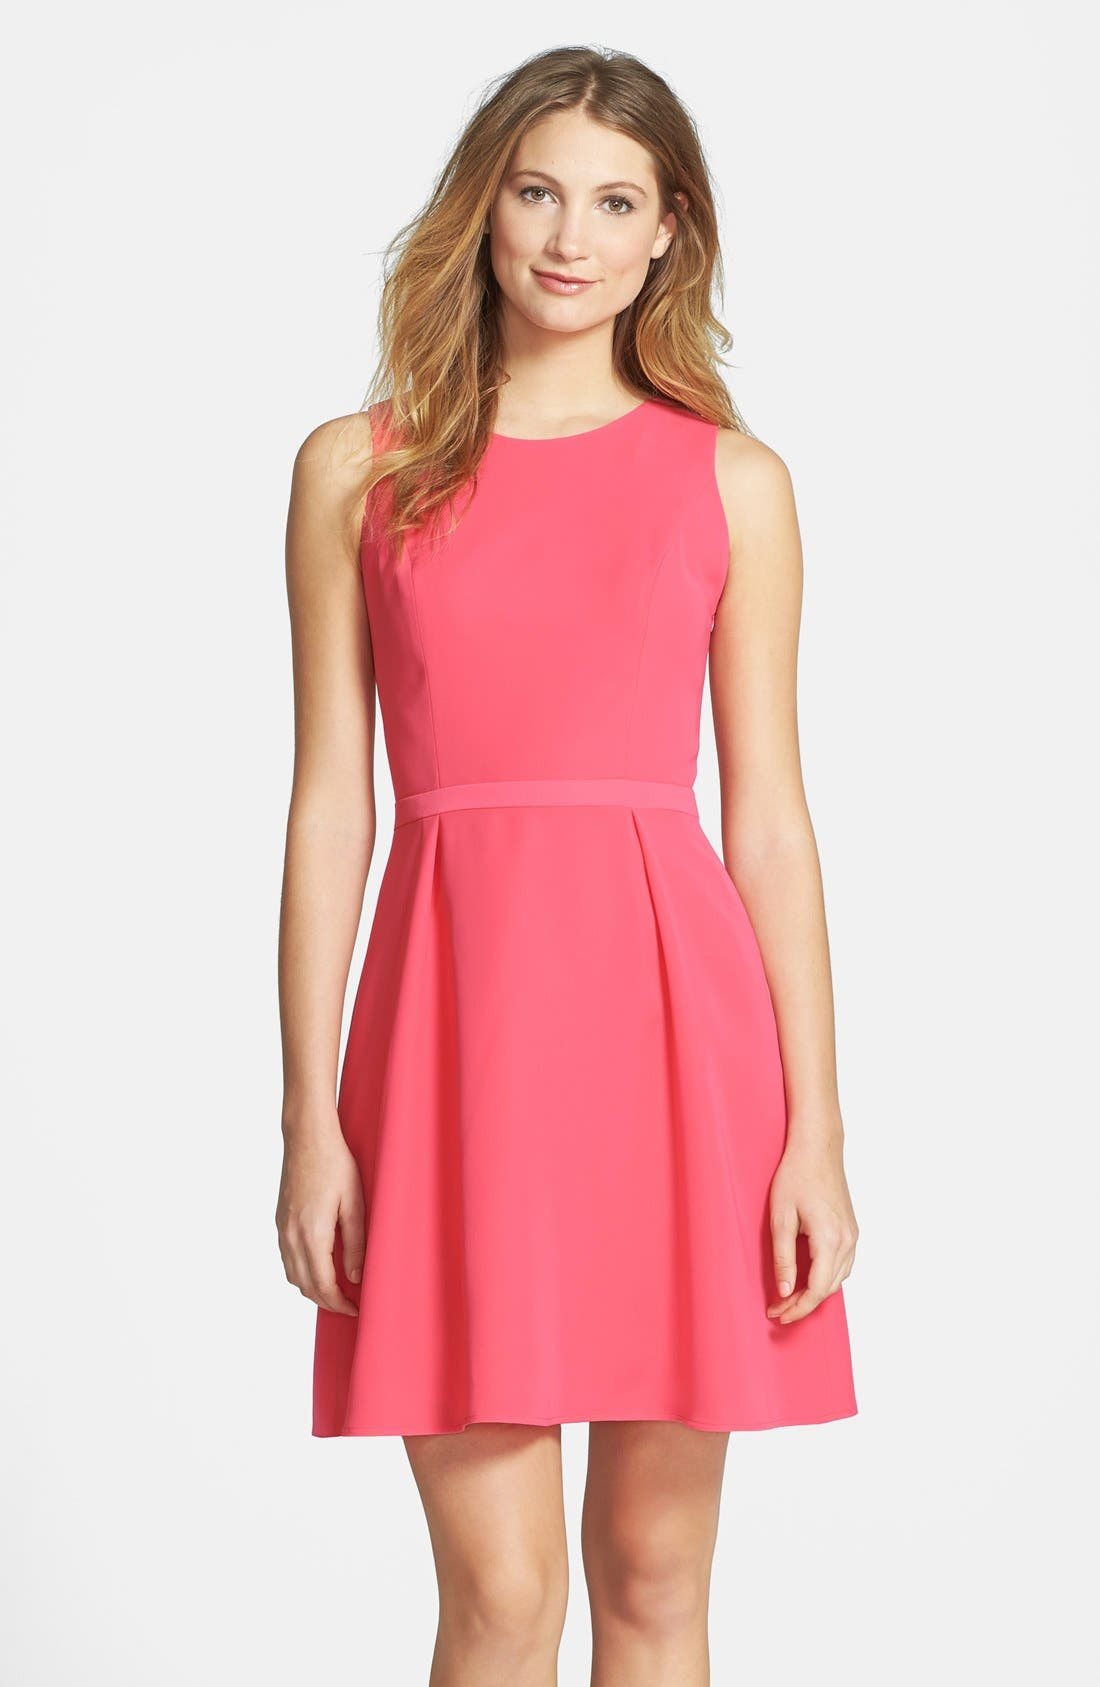 Alternate Image 1 Selected - Cynthia Steffe Knot Back Crepe Fit & Flare Dress